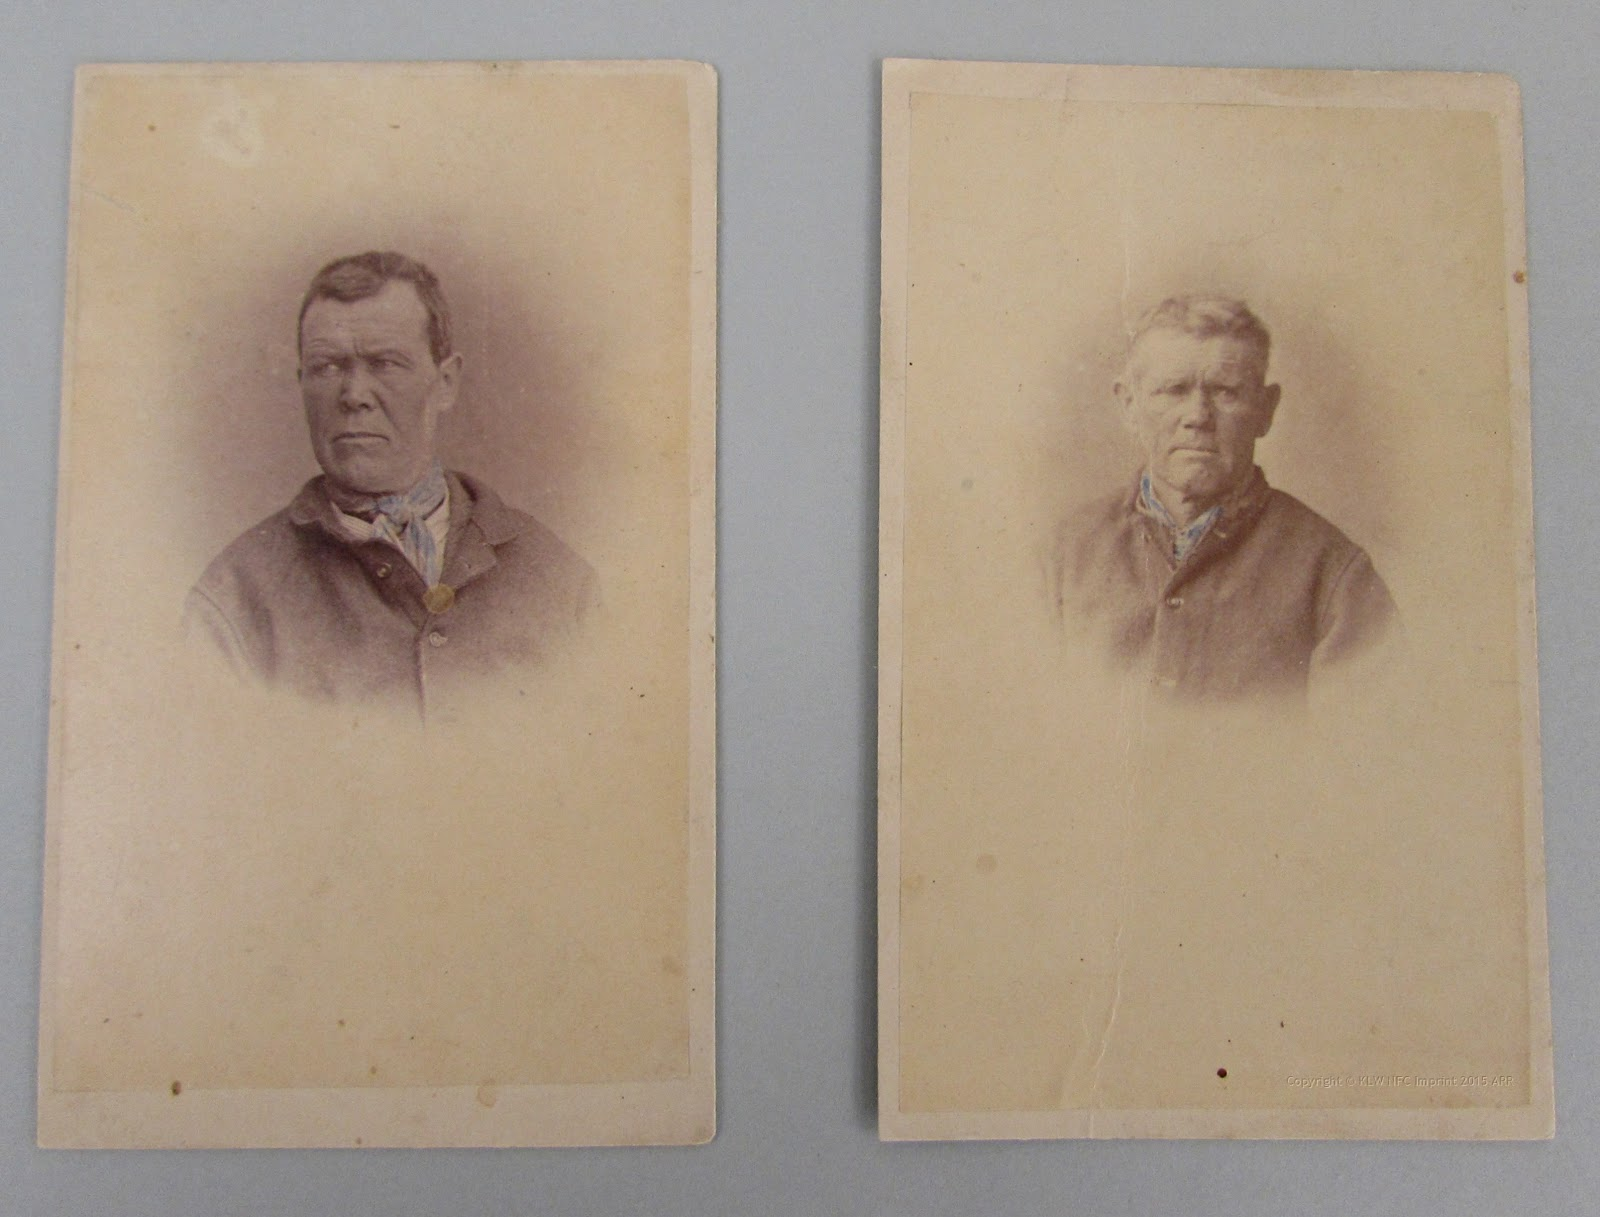 Thomas Nevin's photographs mounted on calico 1870s